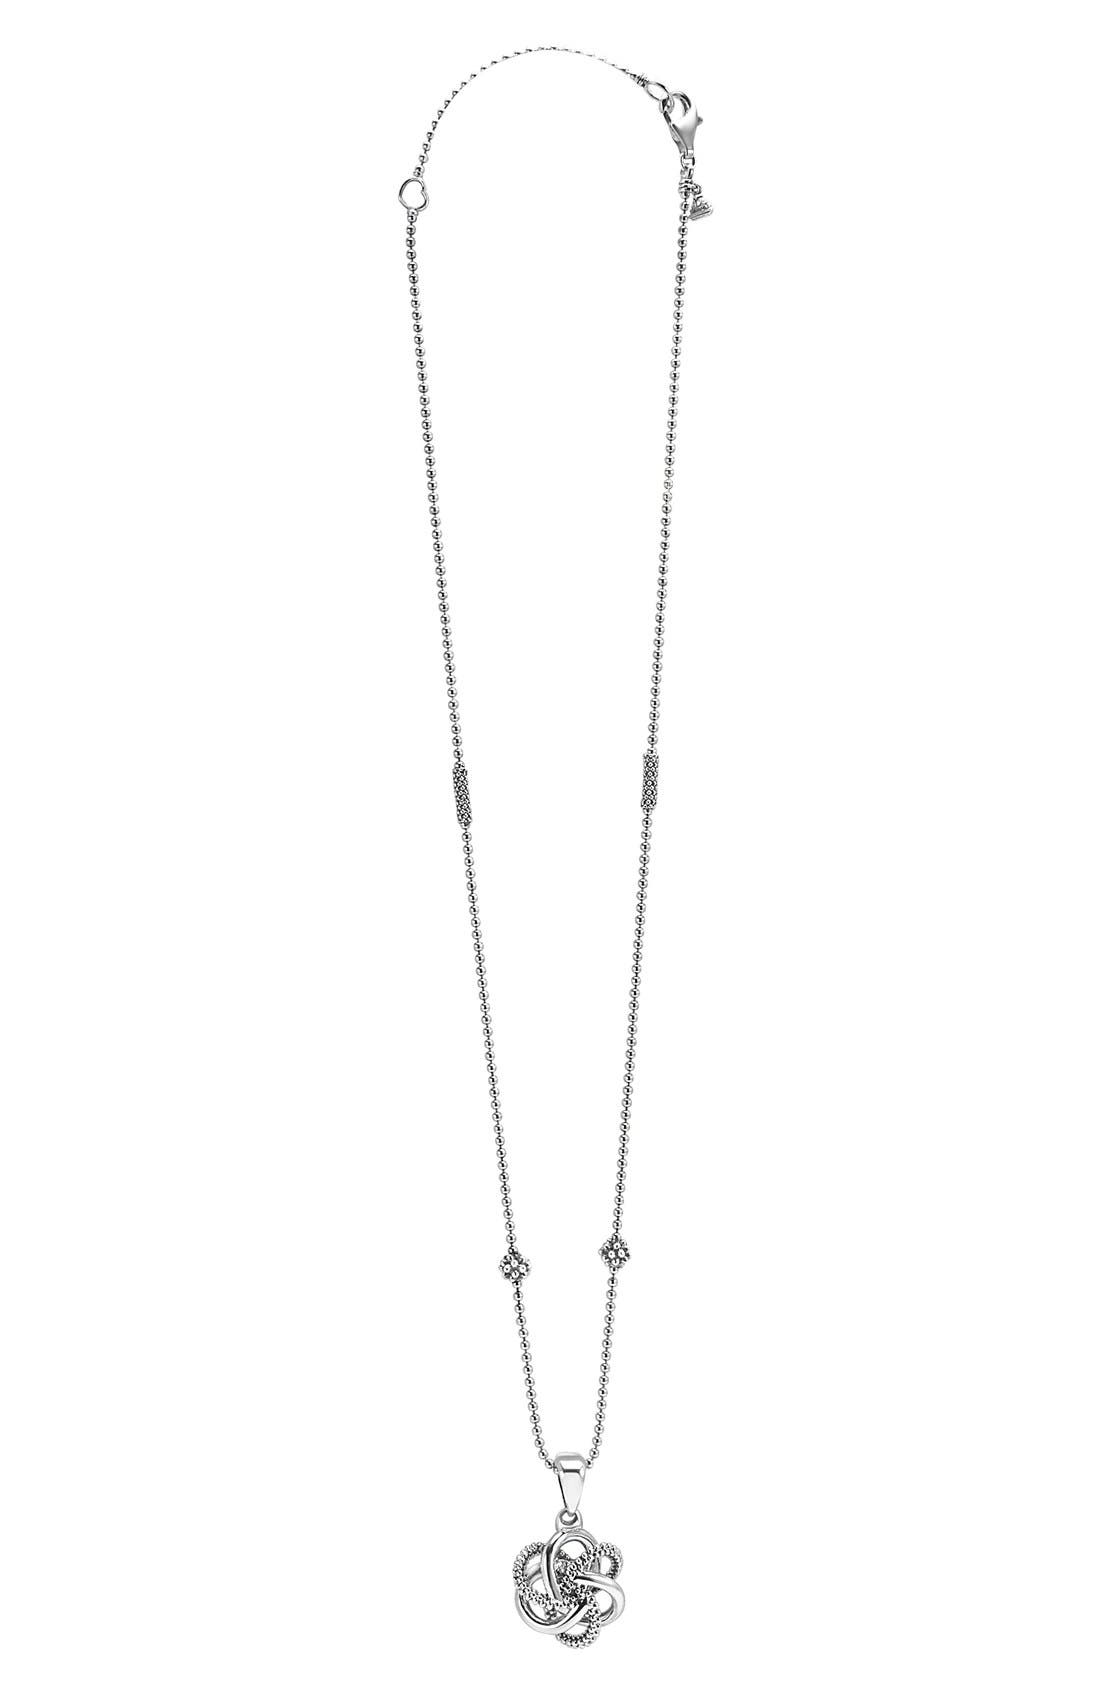 'Love Knot' Pendant Necklace,                             Alternate thumbnail 3, color,                             STERLING SILVER